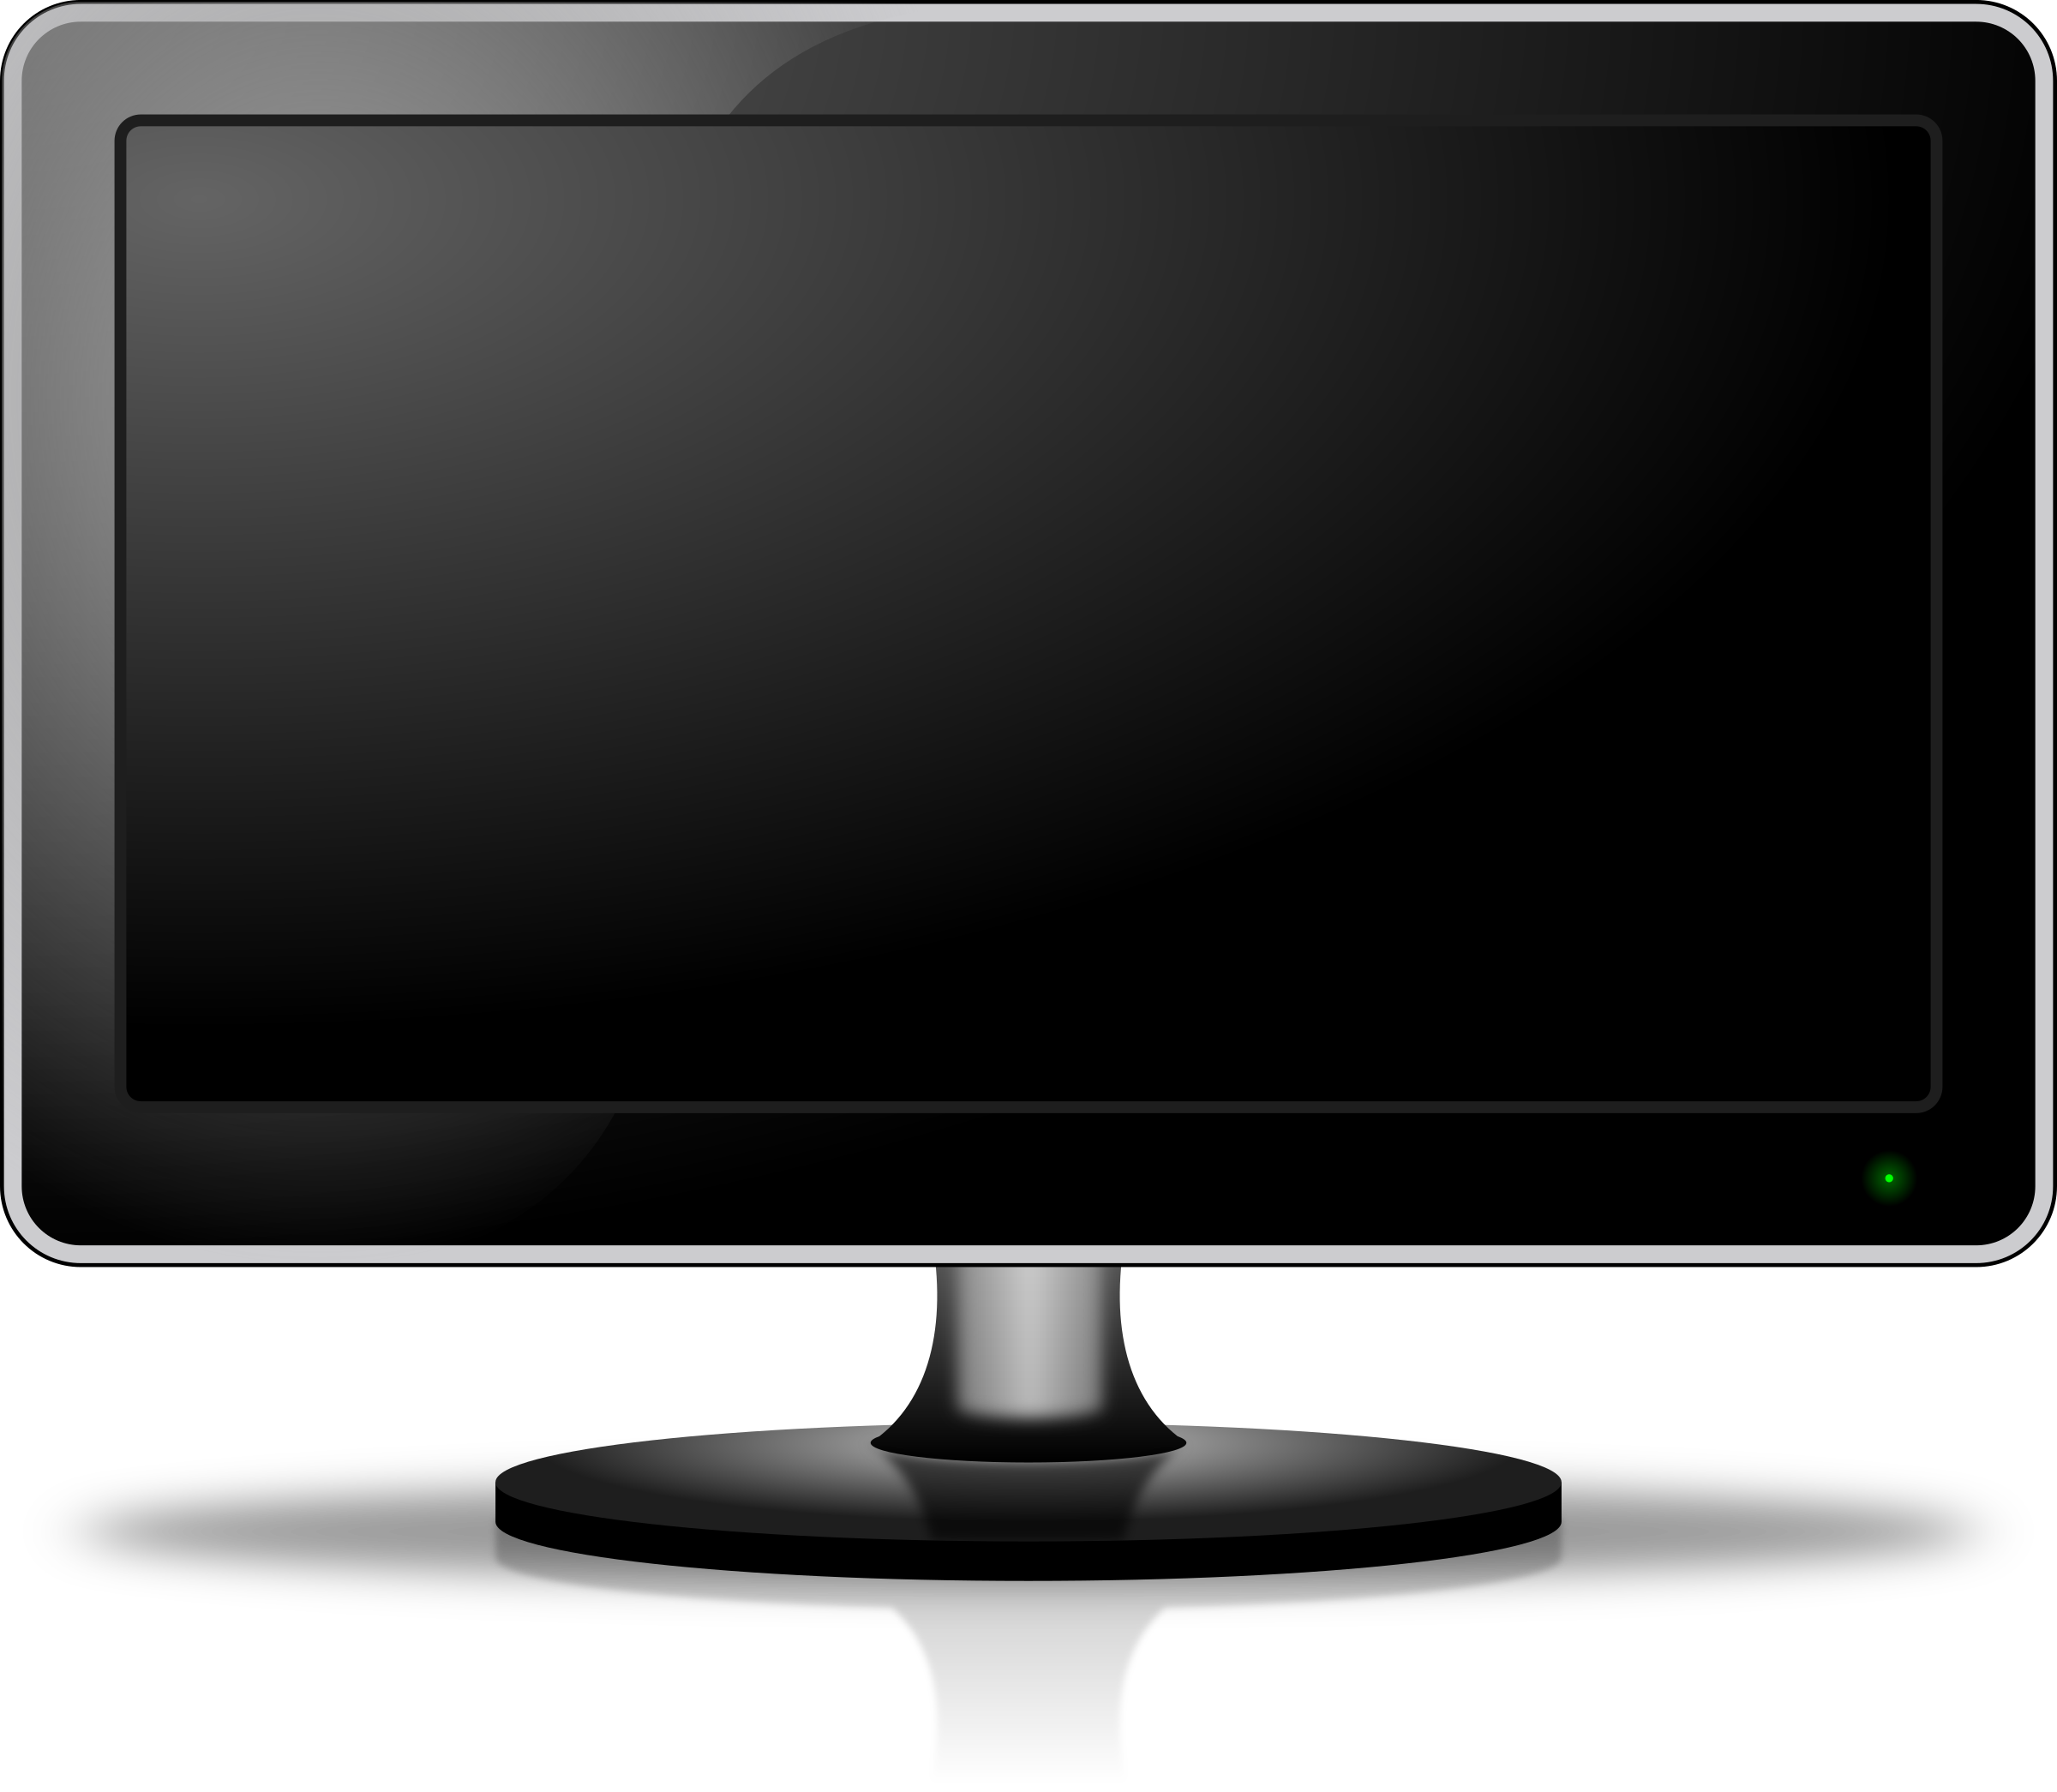 Monitor .png. Png transparent images all